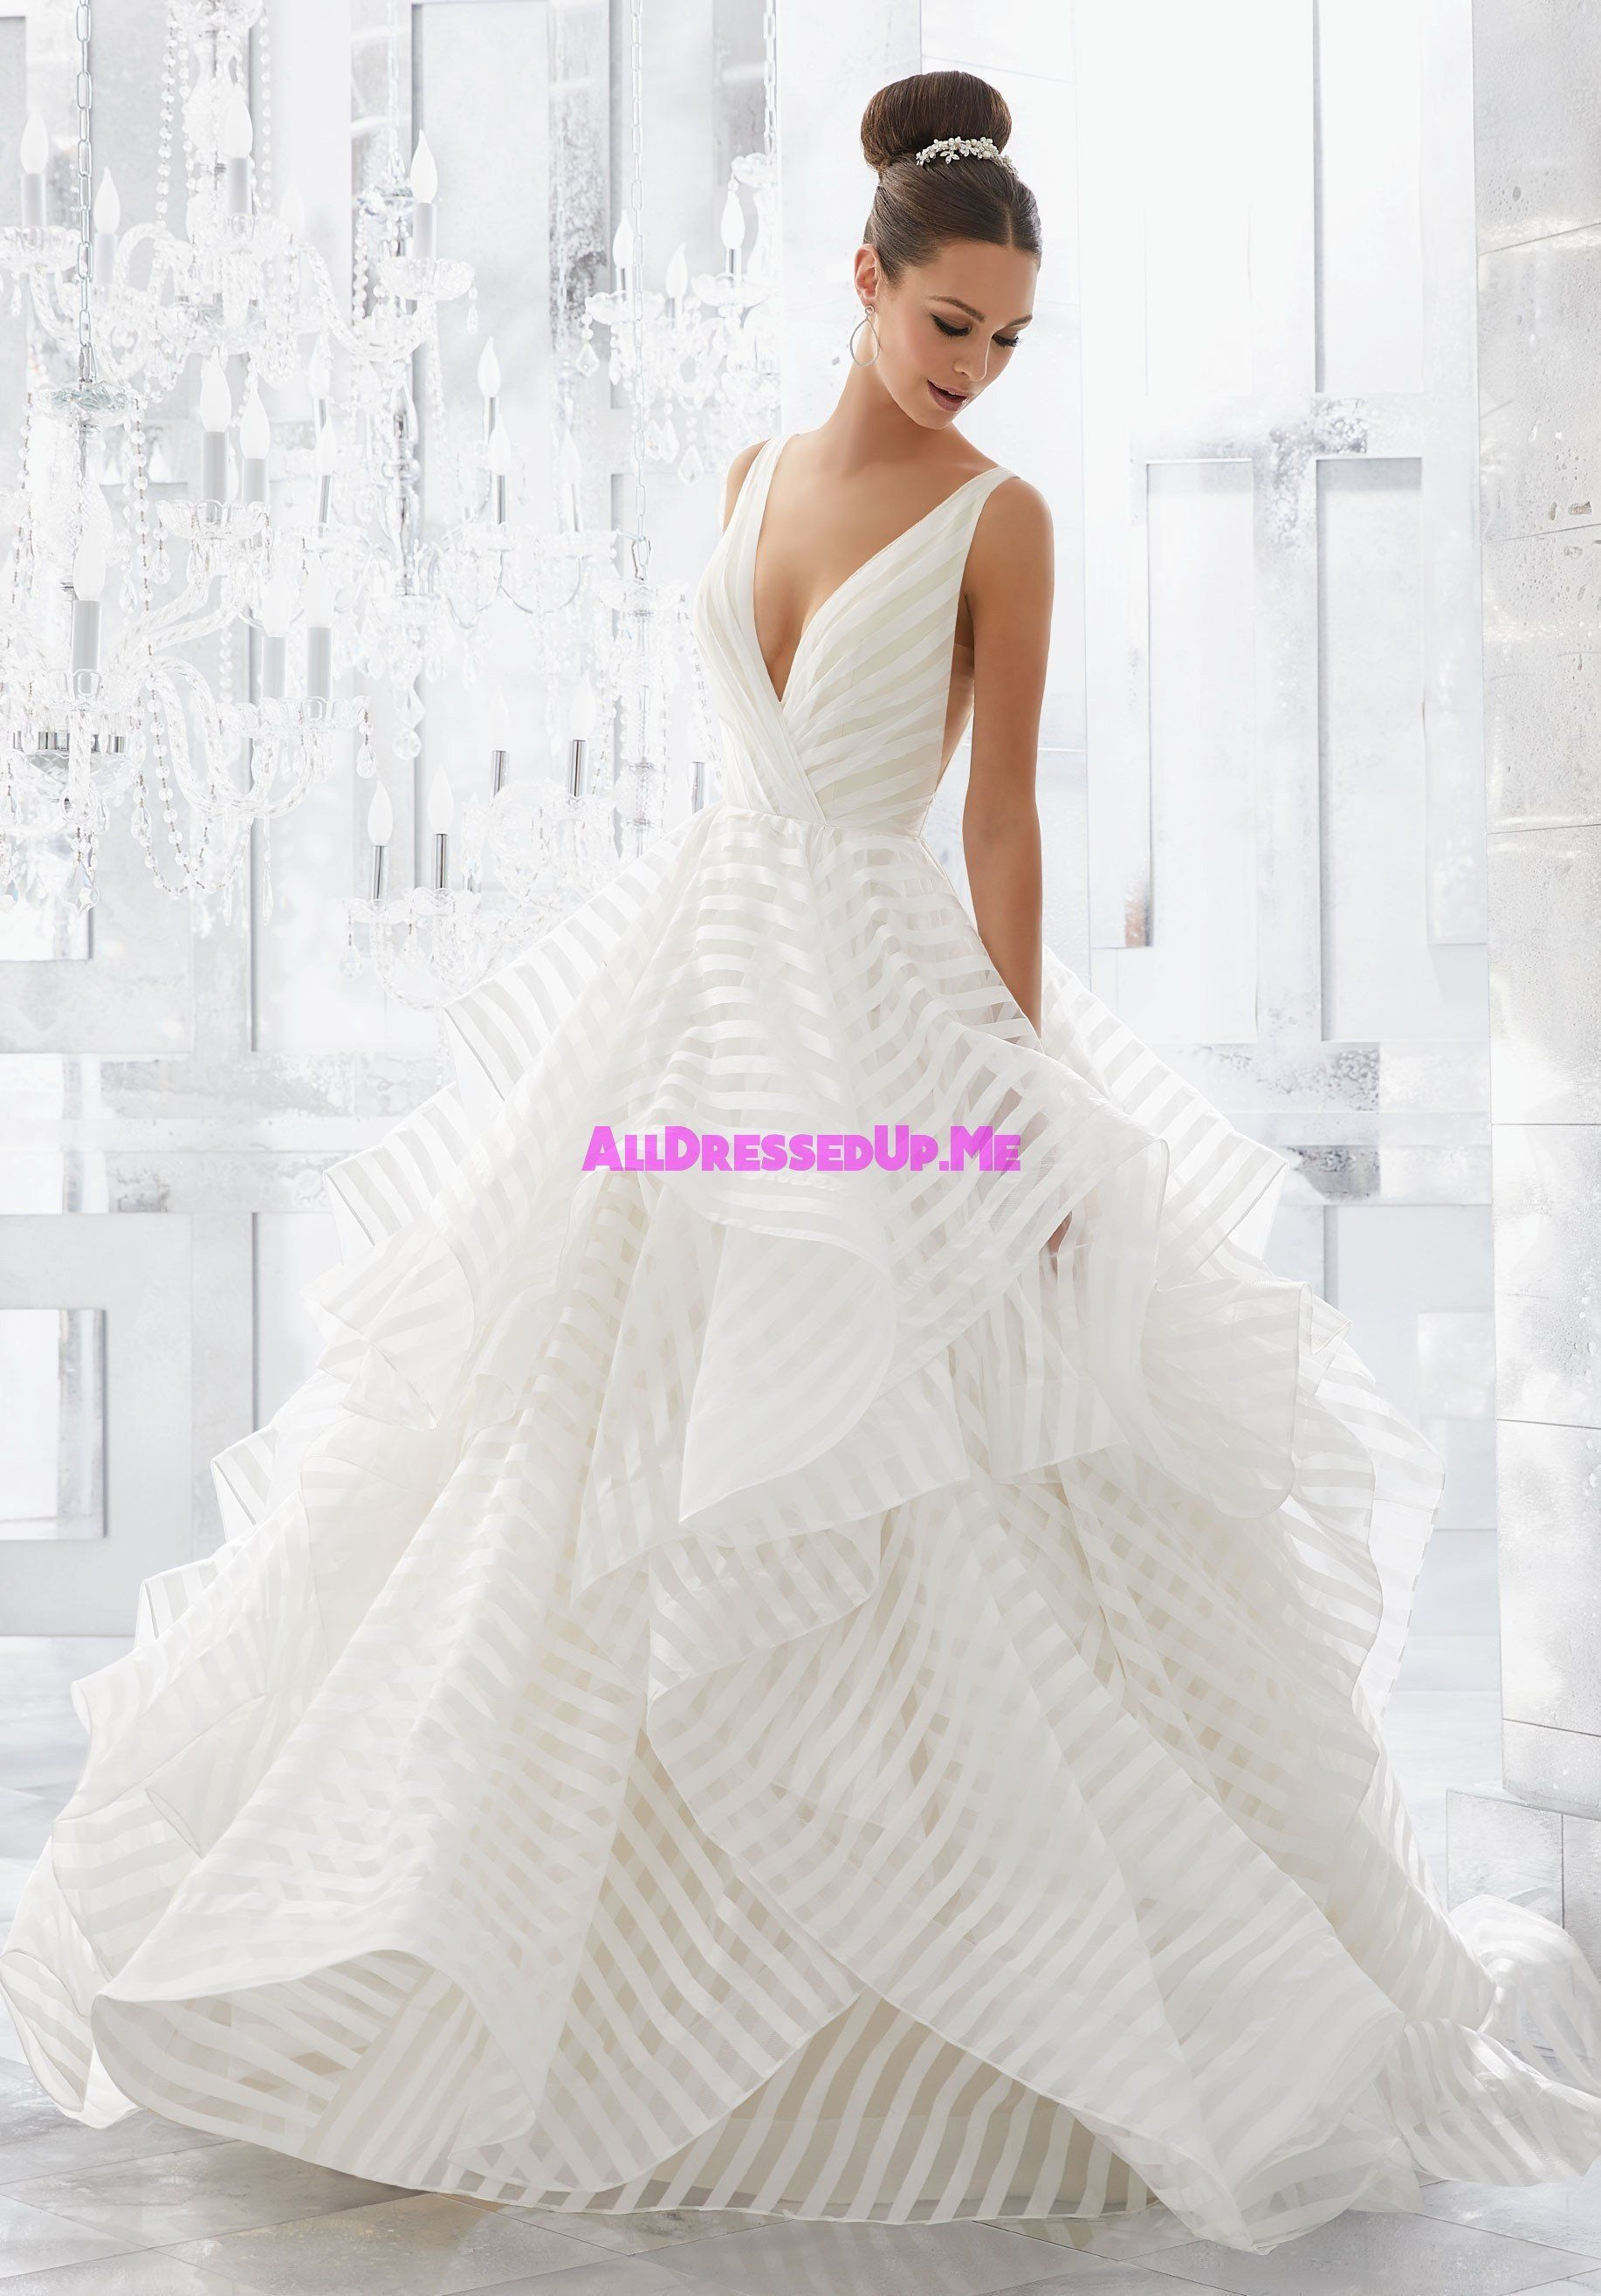 Blog | Pinterest | Bridal gowns, Gowns and Wedding dress